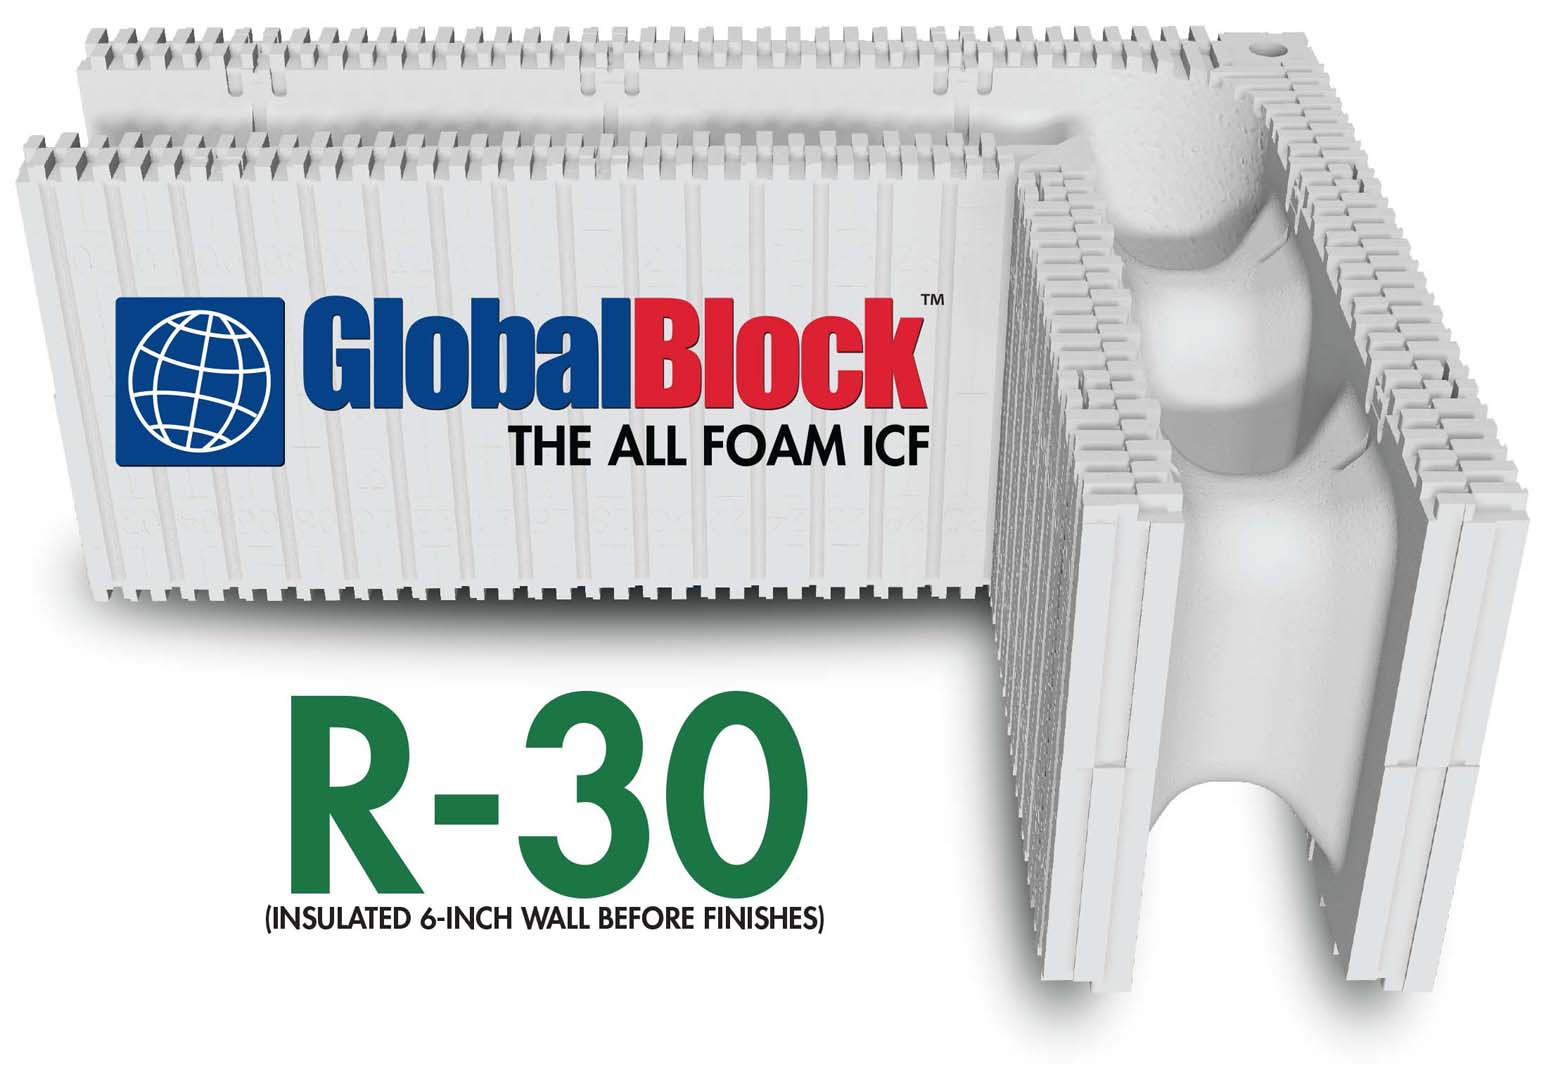 Press Release: BuildBlock Launches All Foam ICF